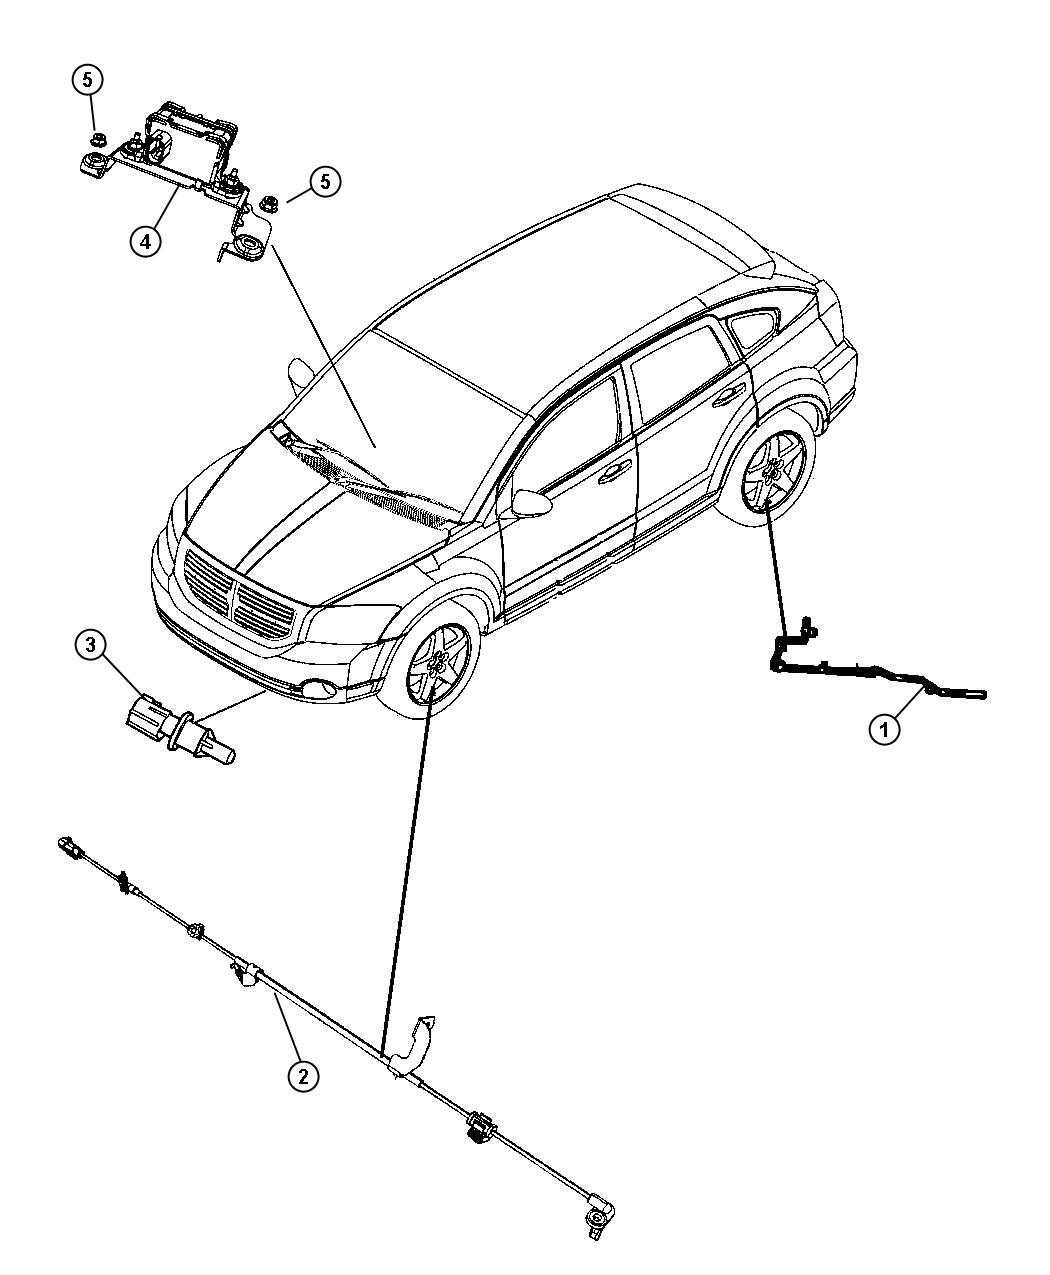 Jeep Patriot Sensor. Dynamics. Used for: lateral